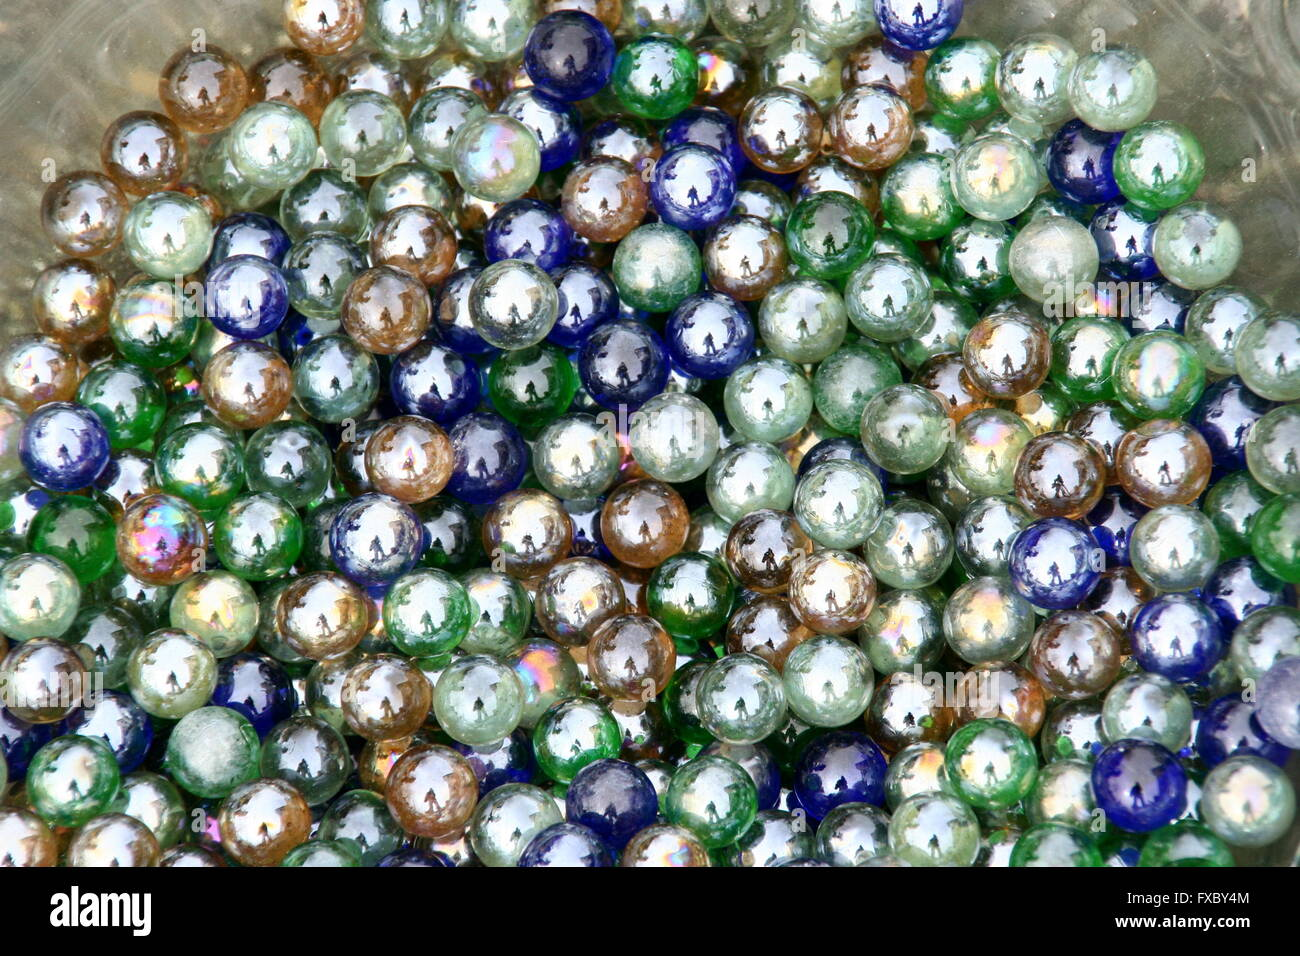 Assortment of colorful vintage playing marbles, flea market, Germany. - Stock Image